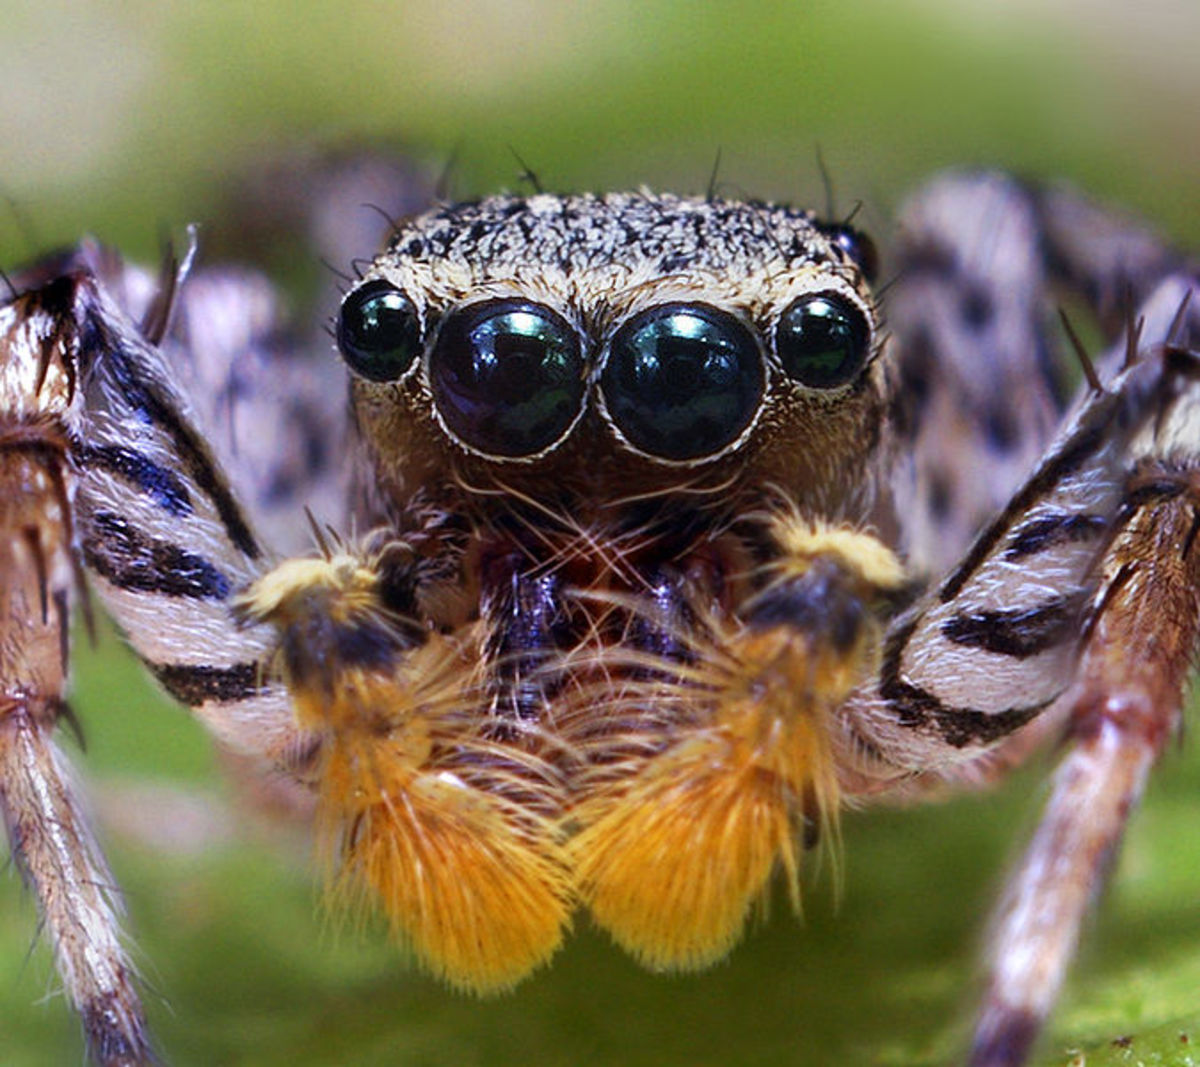 Jumping spiders get airborne but do not travel far.